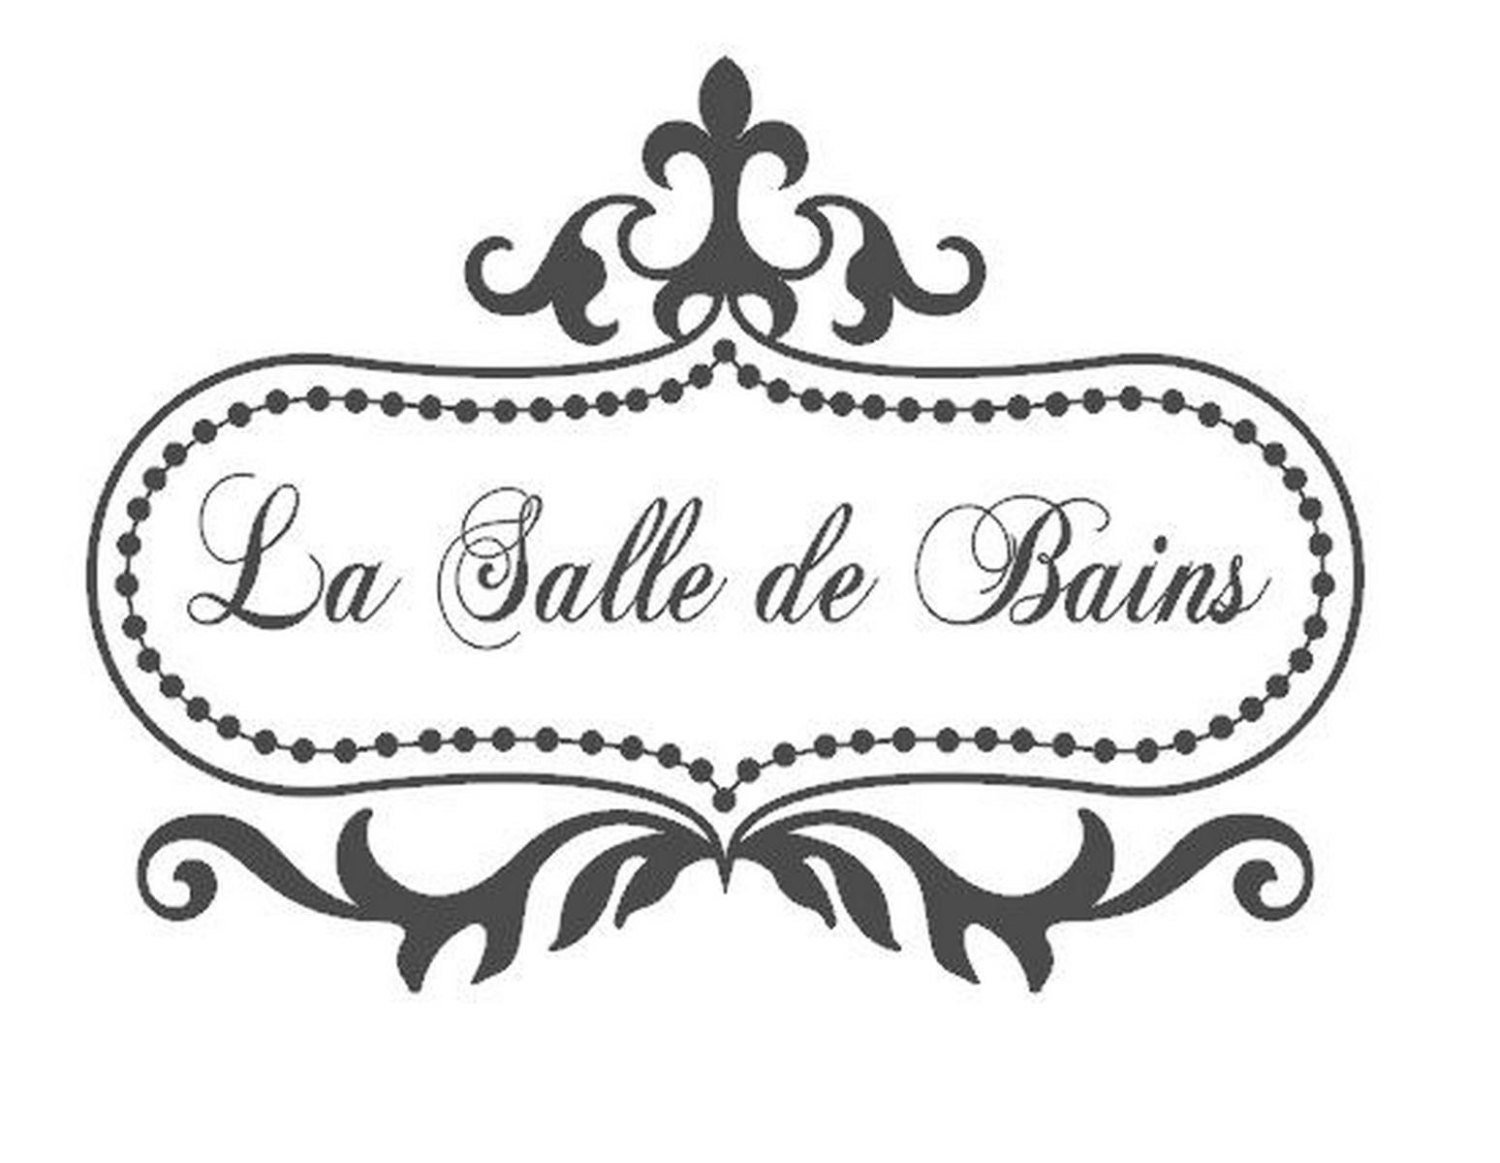 La salle de bain bathroom door or wall by morningwoodstudio for Salle de bain door sign